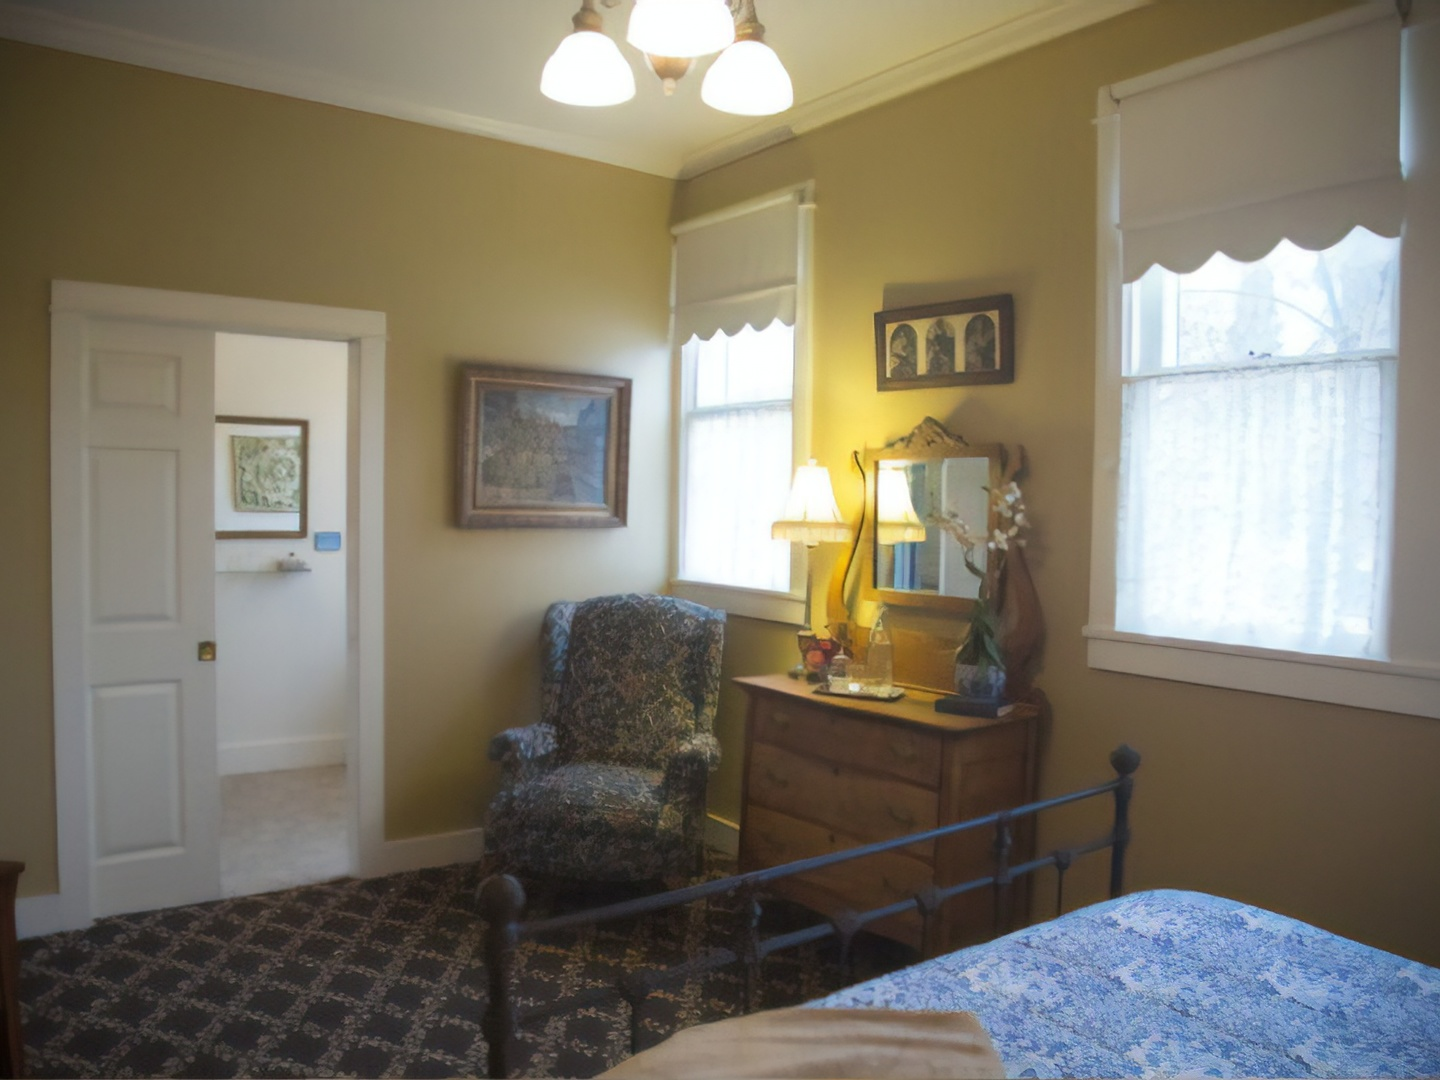 A bedroom with a large window at Jacksonville's Magnolia Inn.